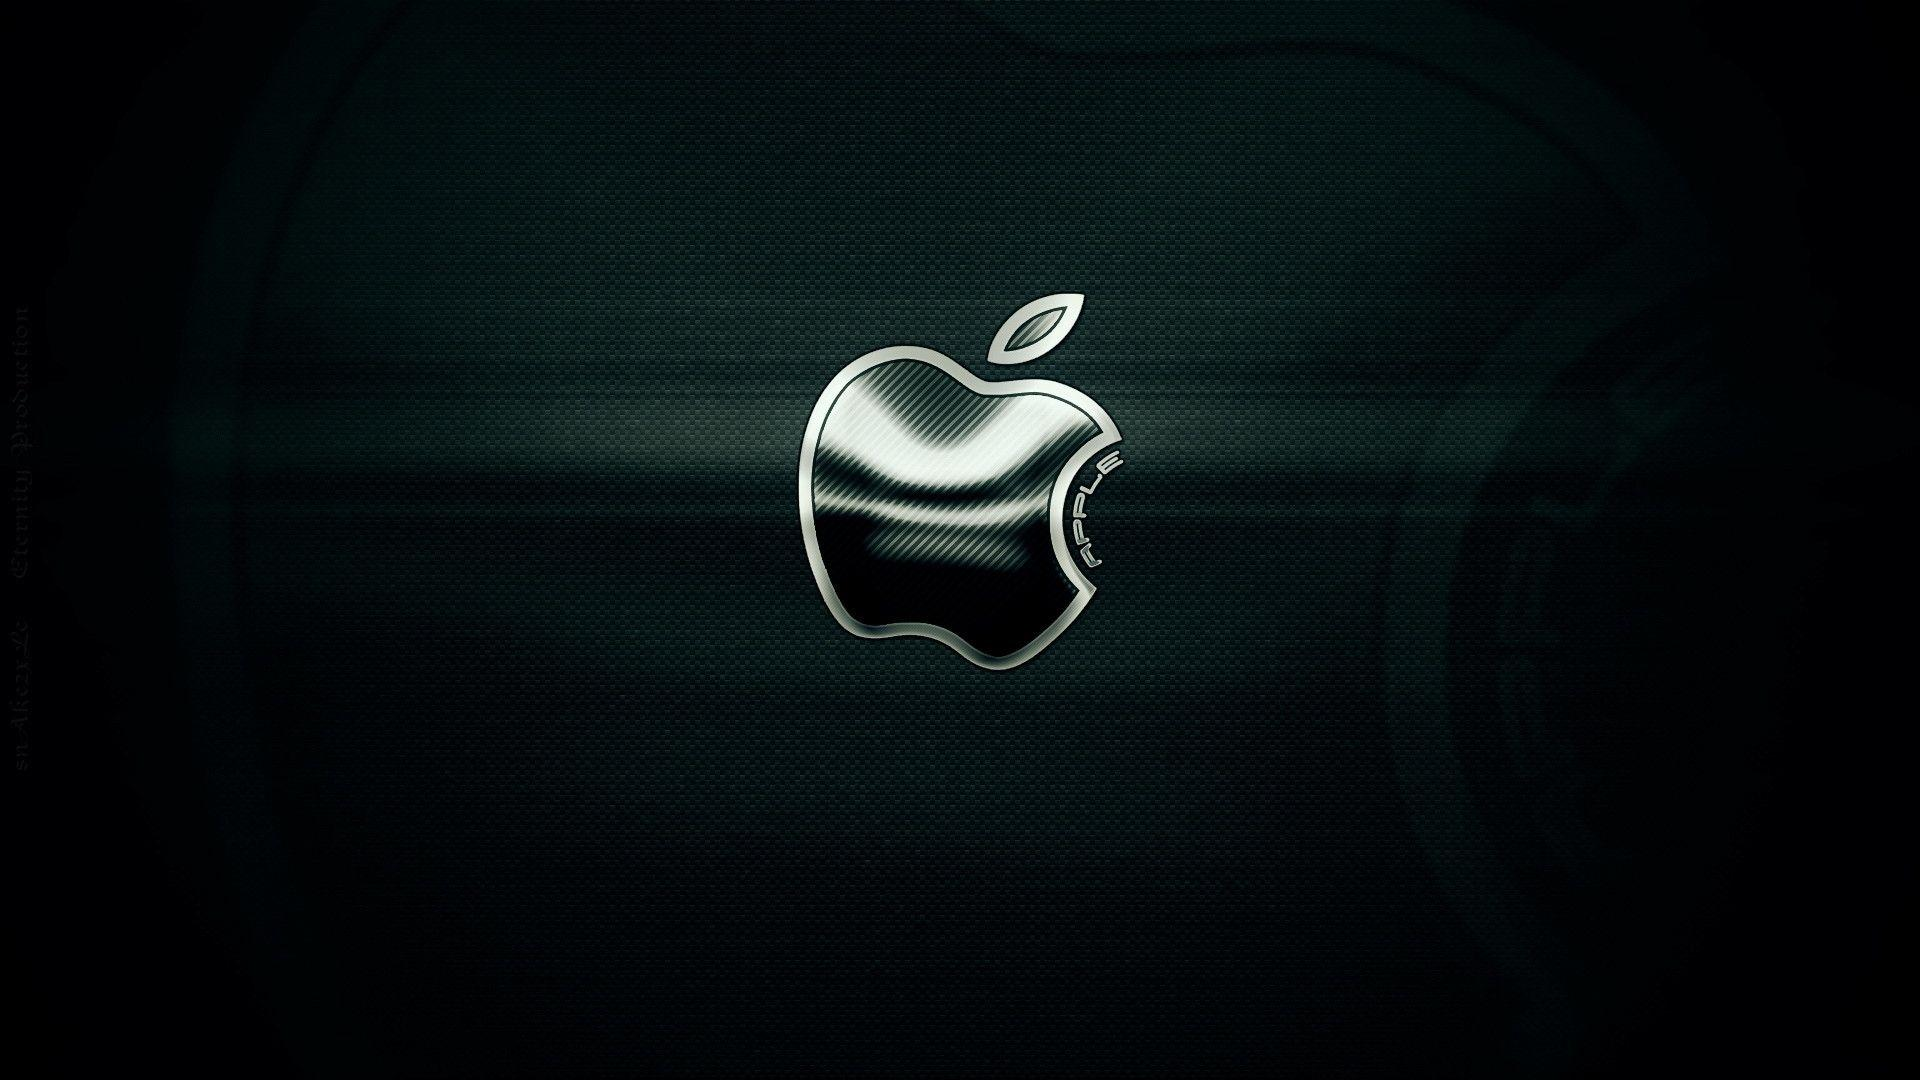 Apple Logo Hd Wallpapers For Iphone 1920 1080 Apple Logo: Wallpapers Apple 3d